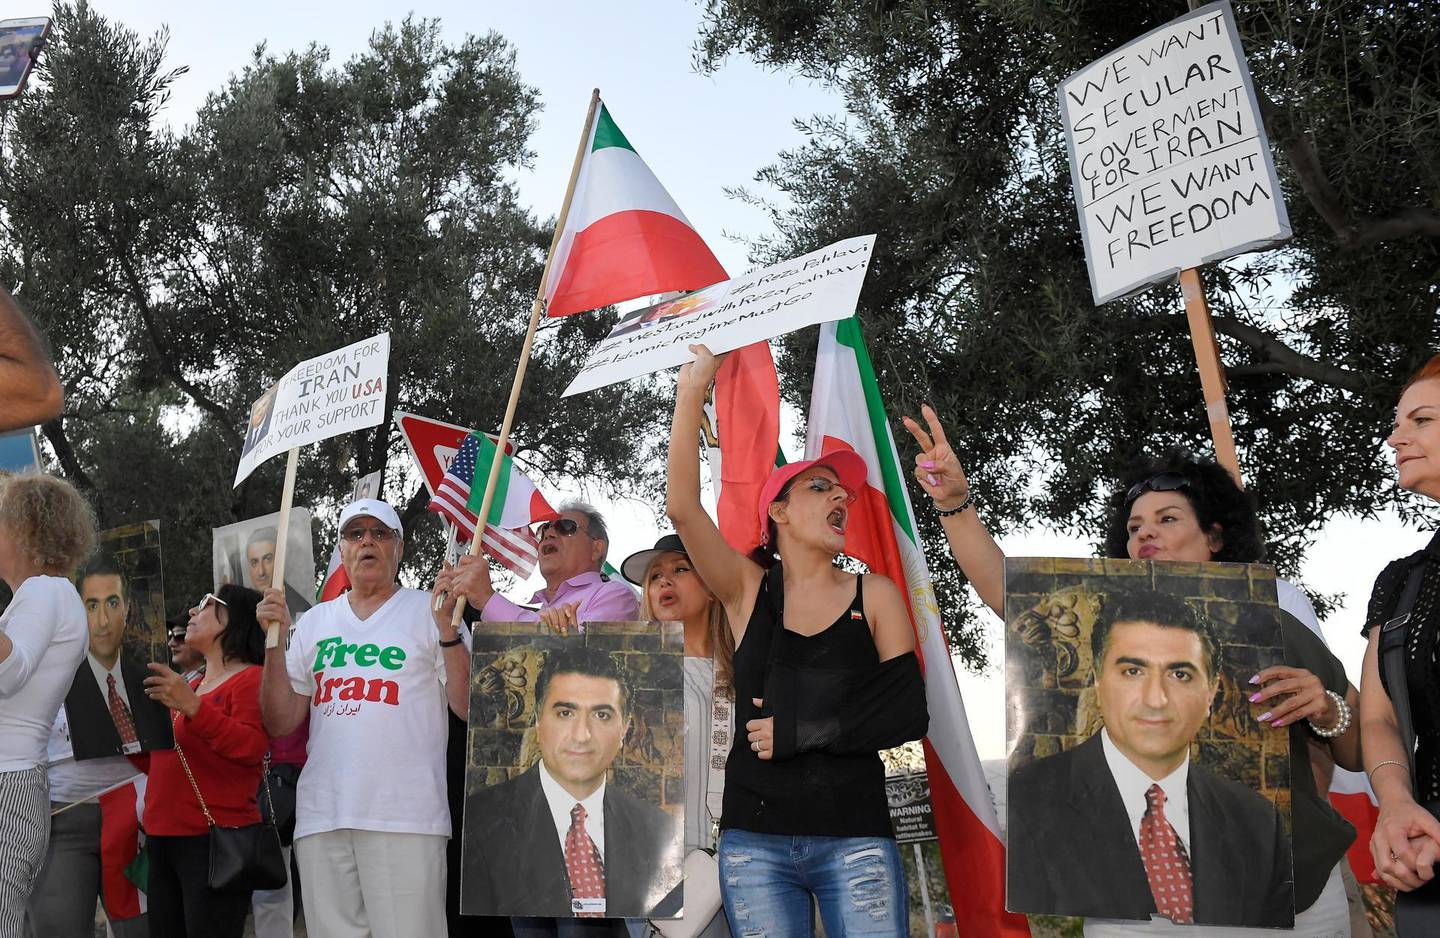 Protesters against the current Iranian regime stand outside the Ronald Reagan Presidential Library and Museum where U. S. Secretary of State Mike Pompeo was speaking Sunday, July 22, 2018, in Simi Valley, Calif. (AP Photo/Mark J. Terrill)